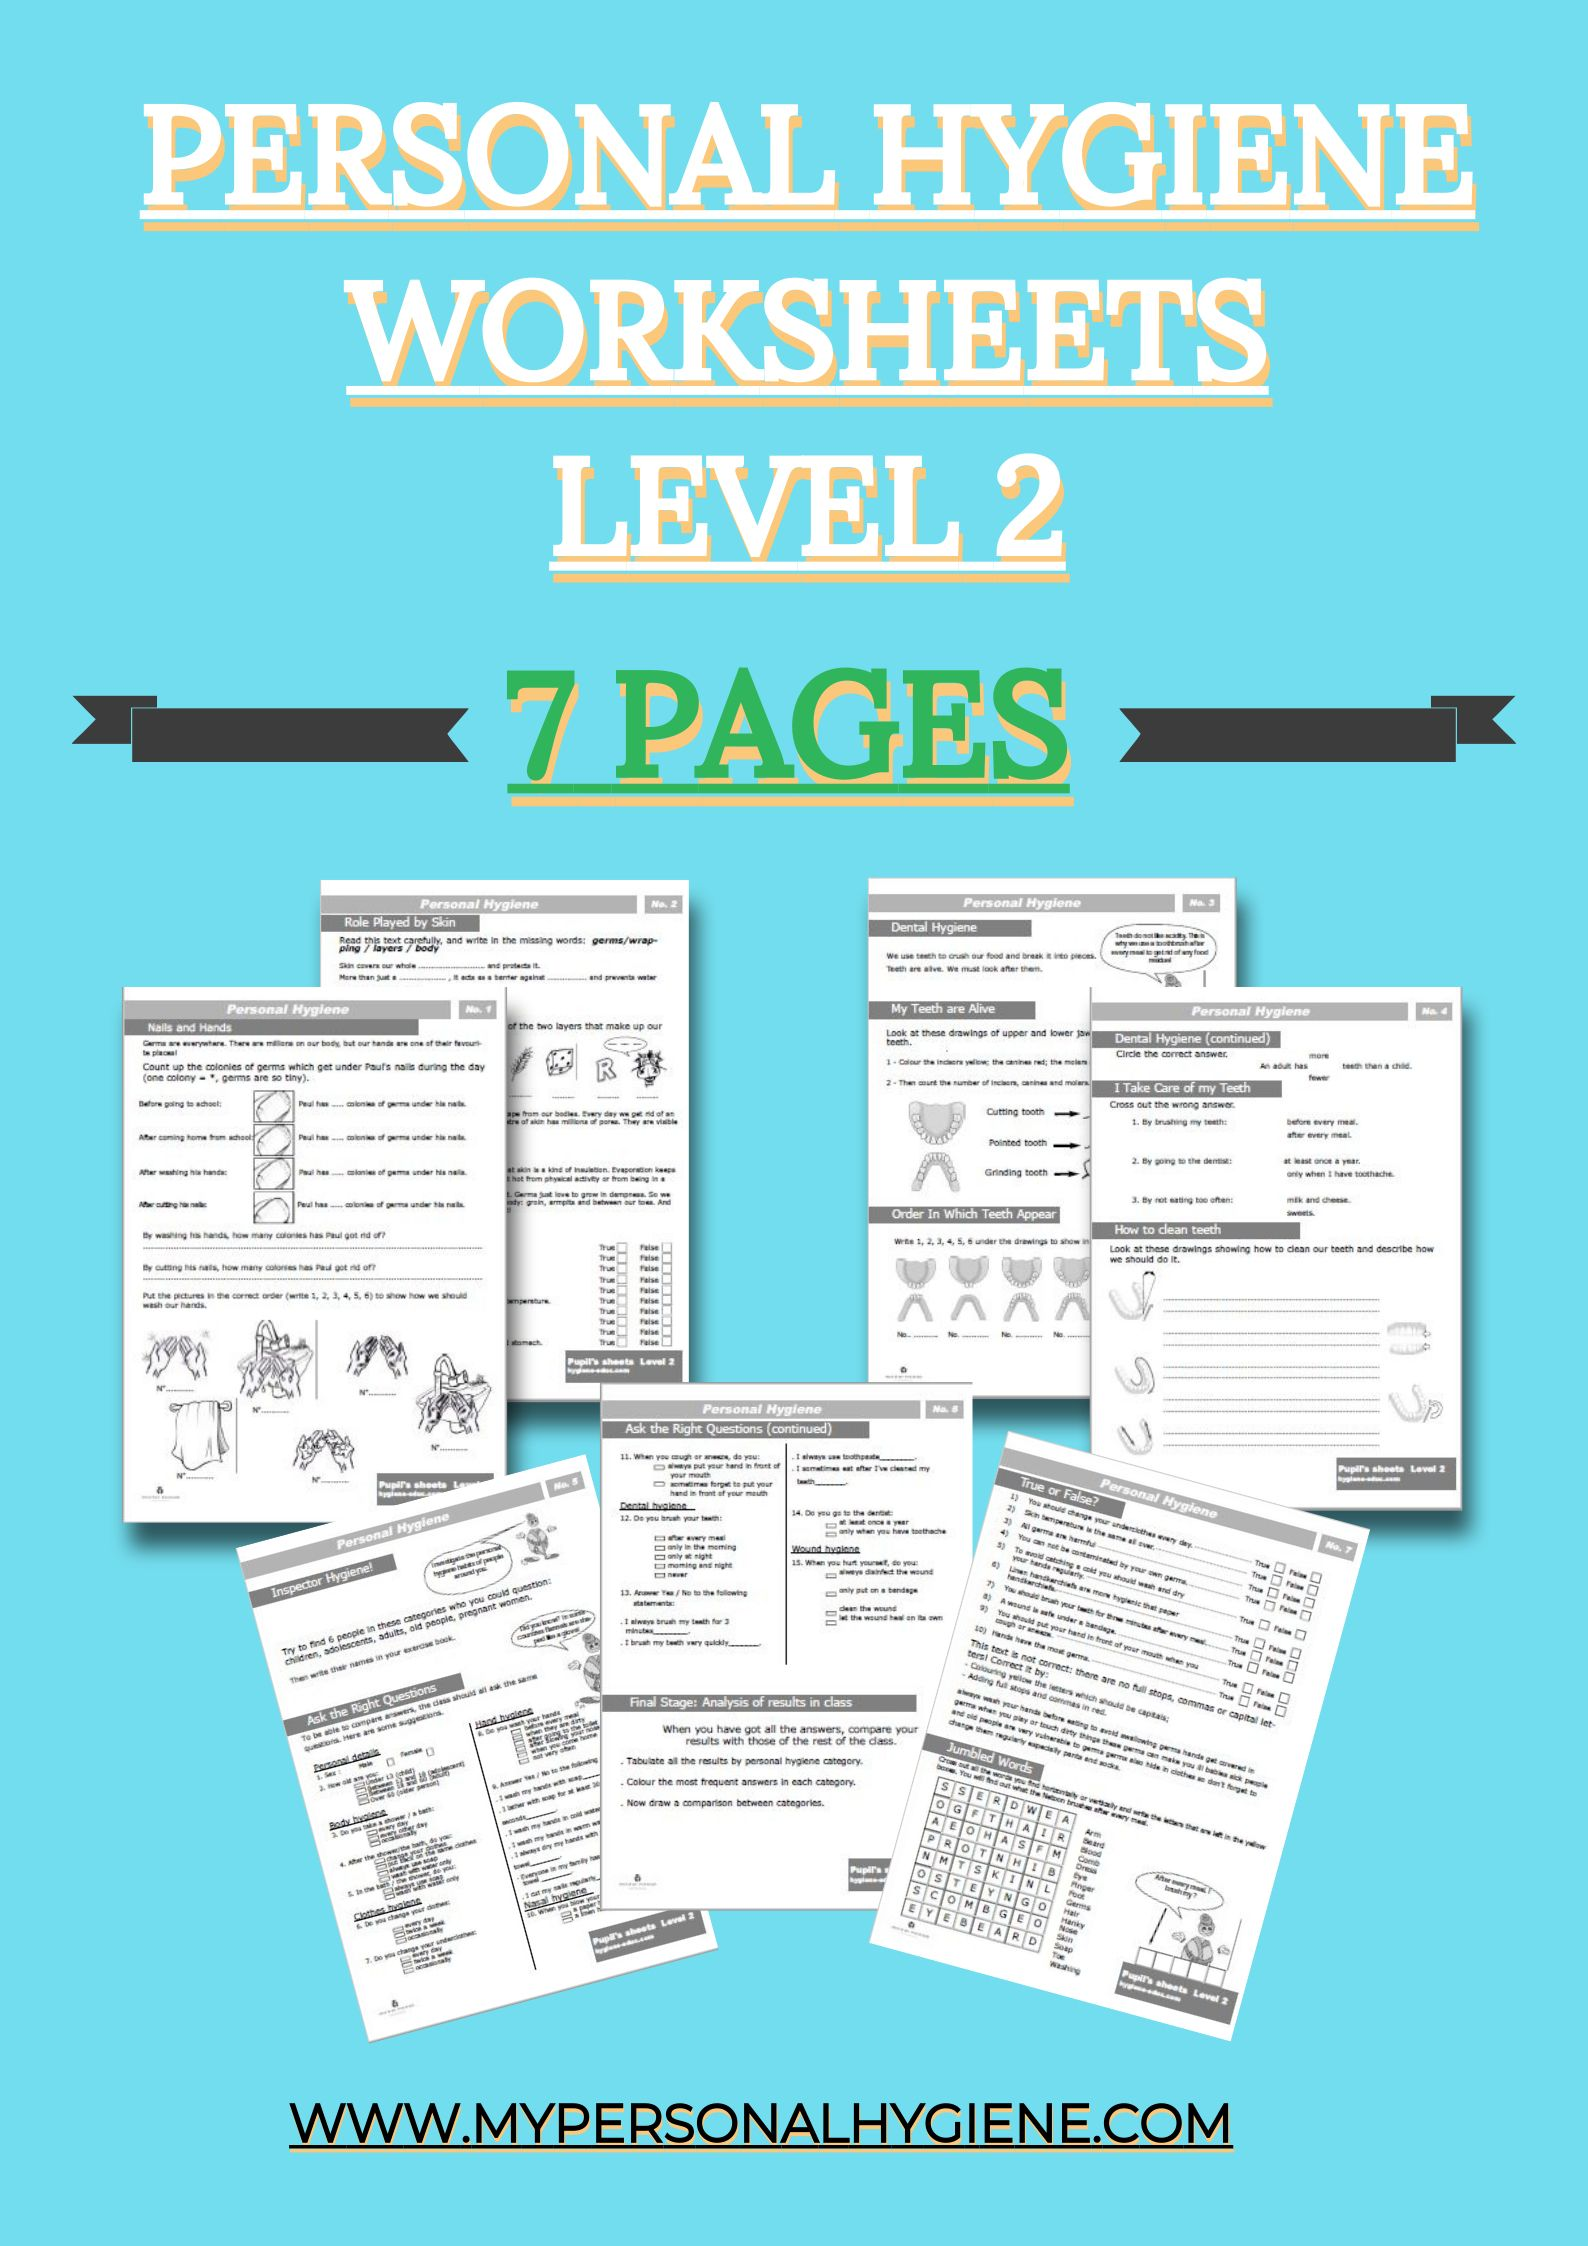 Level 2 Of Personal Hygiene Worksheets For Kids Included